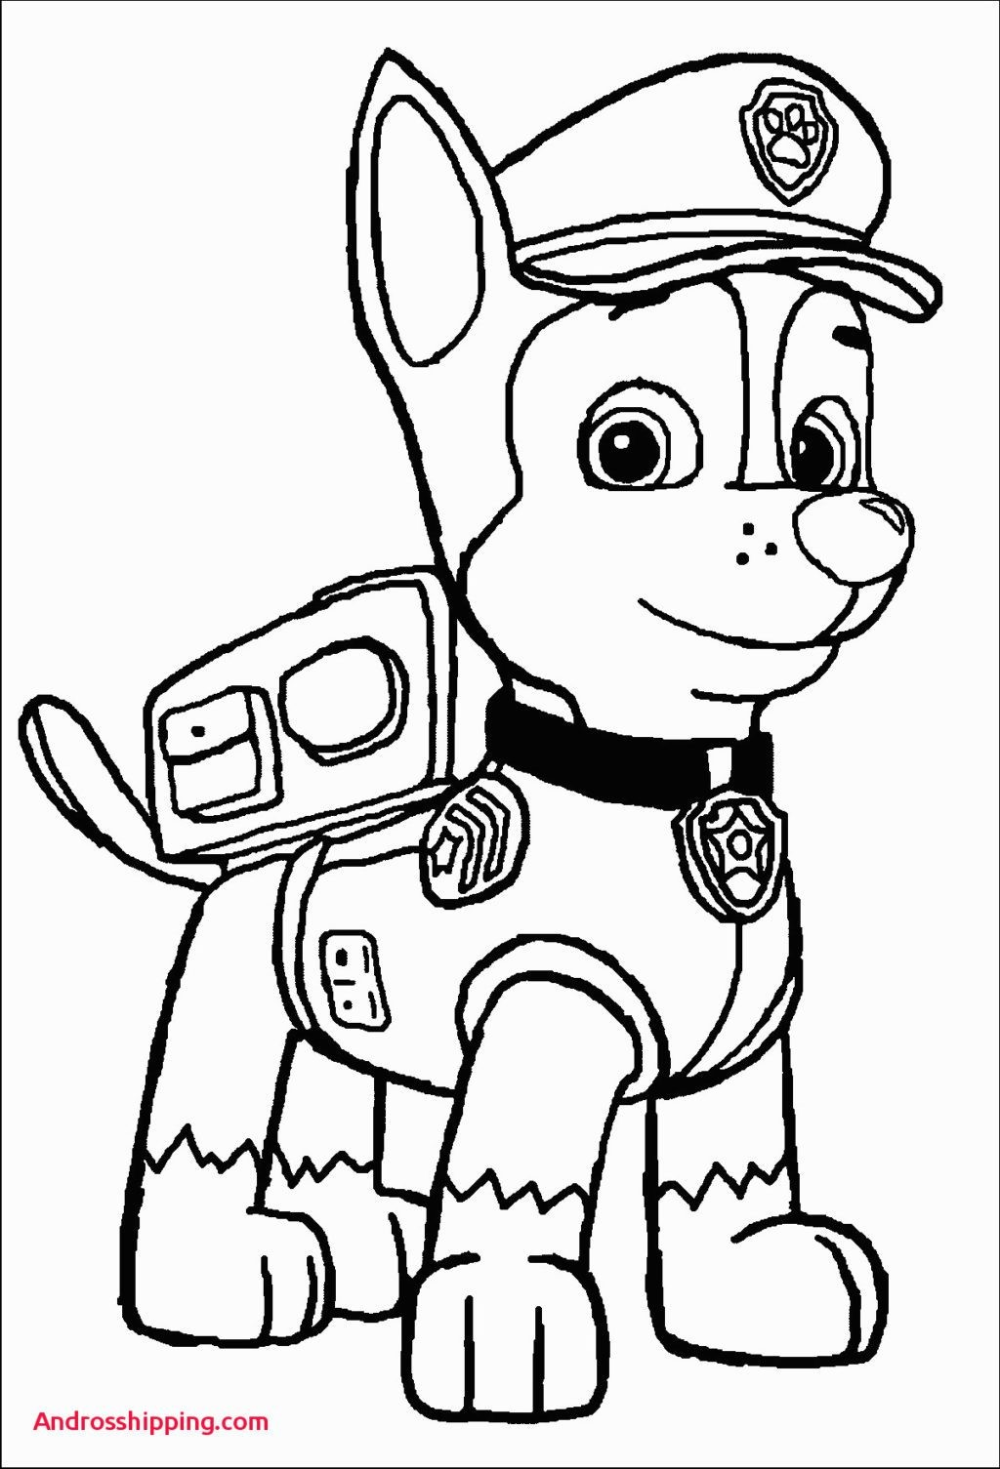 Coloring Sheets For Kids Pages Printable Paw Patrol Endearing Pictures In 2020 Paw Patrol Coloring Paw Patrol Coloring Pages Animal Coloring Pages